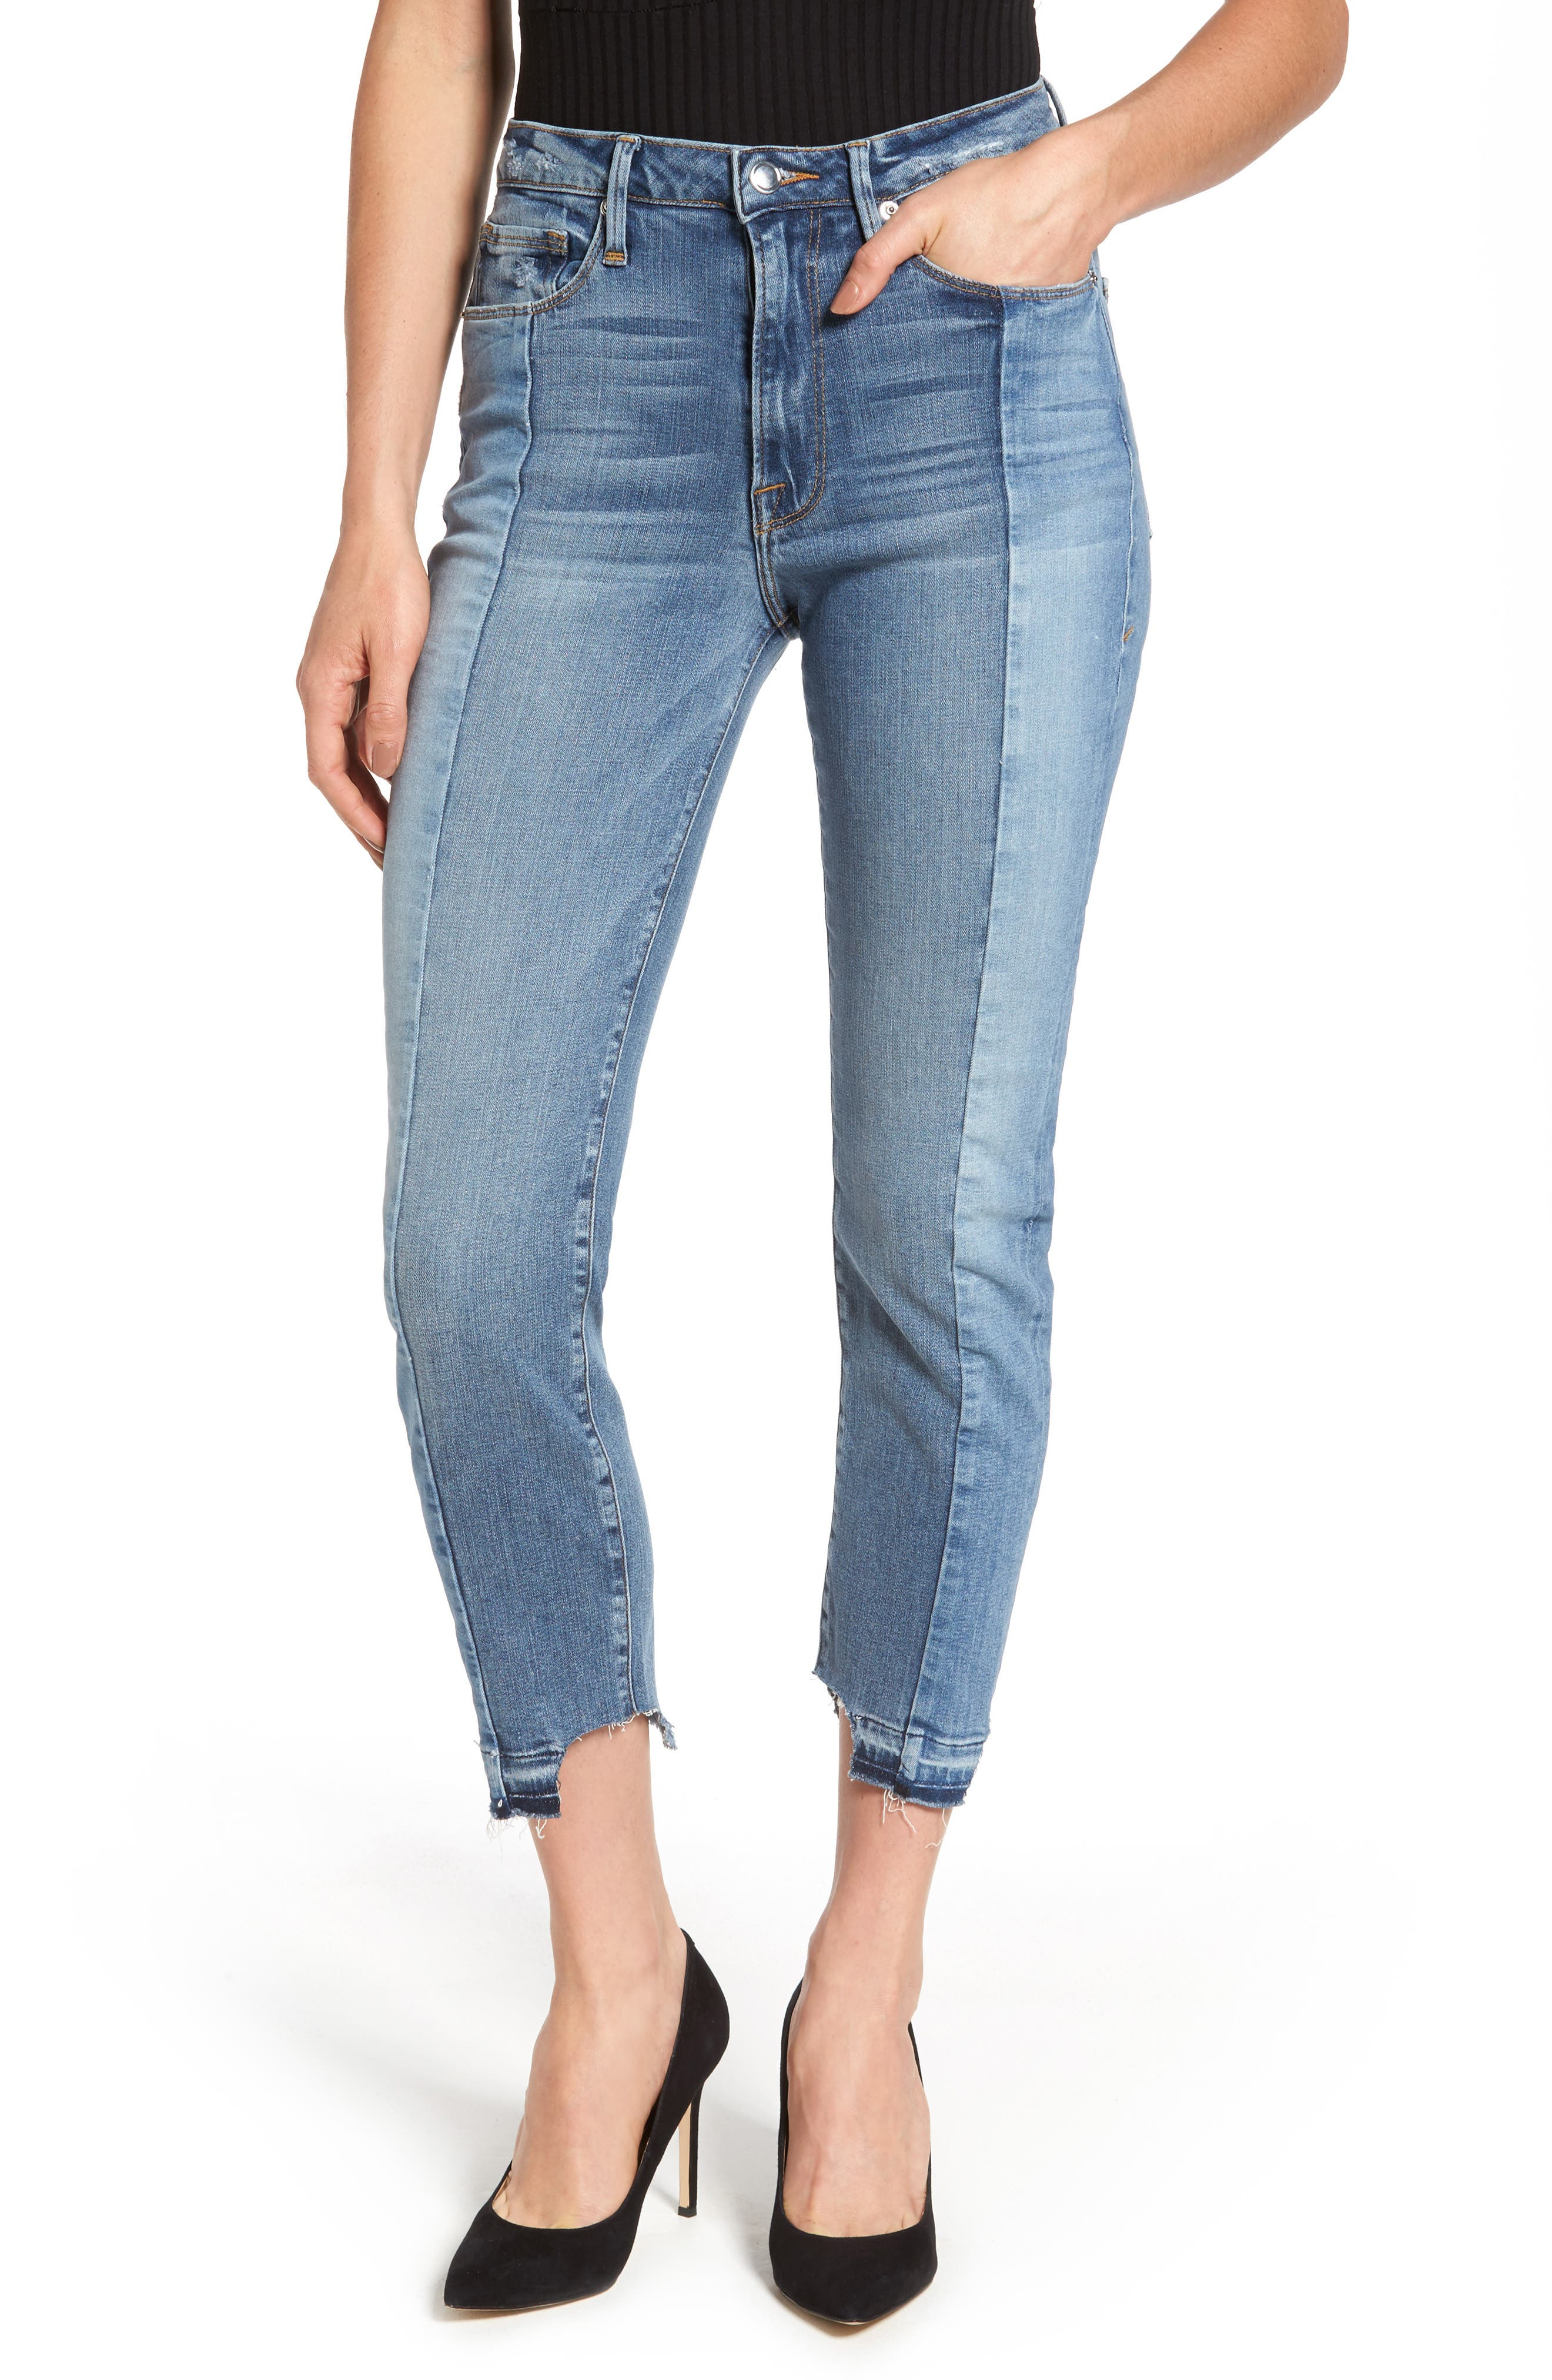 Alternate Image 1 Selected - Good American Raw Hem High Waist Skinny Jeans (Blue 078) (Regular & Plus Size)